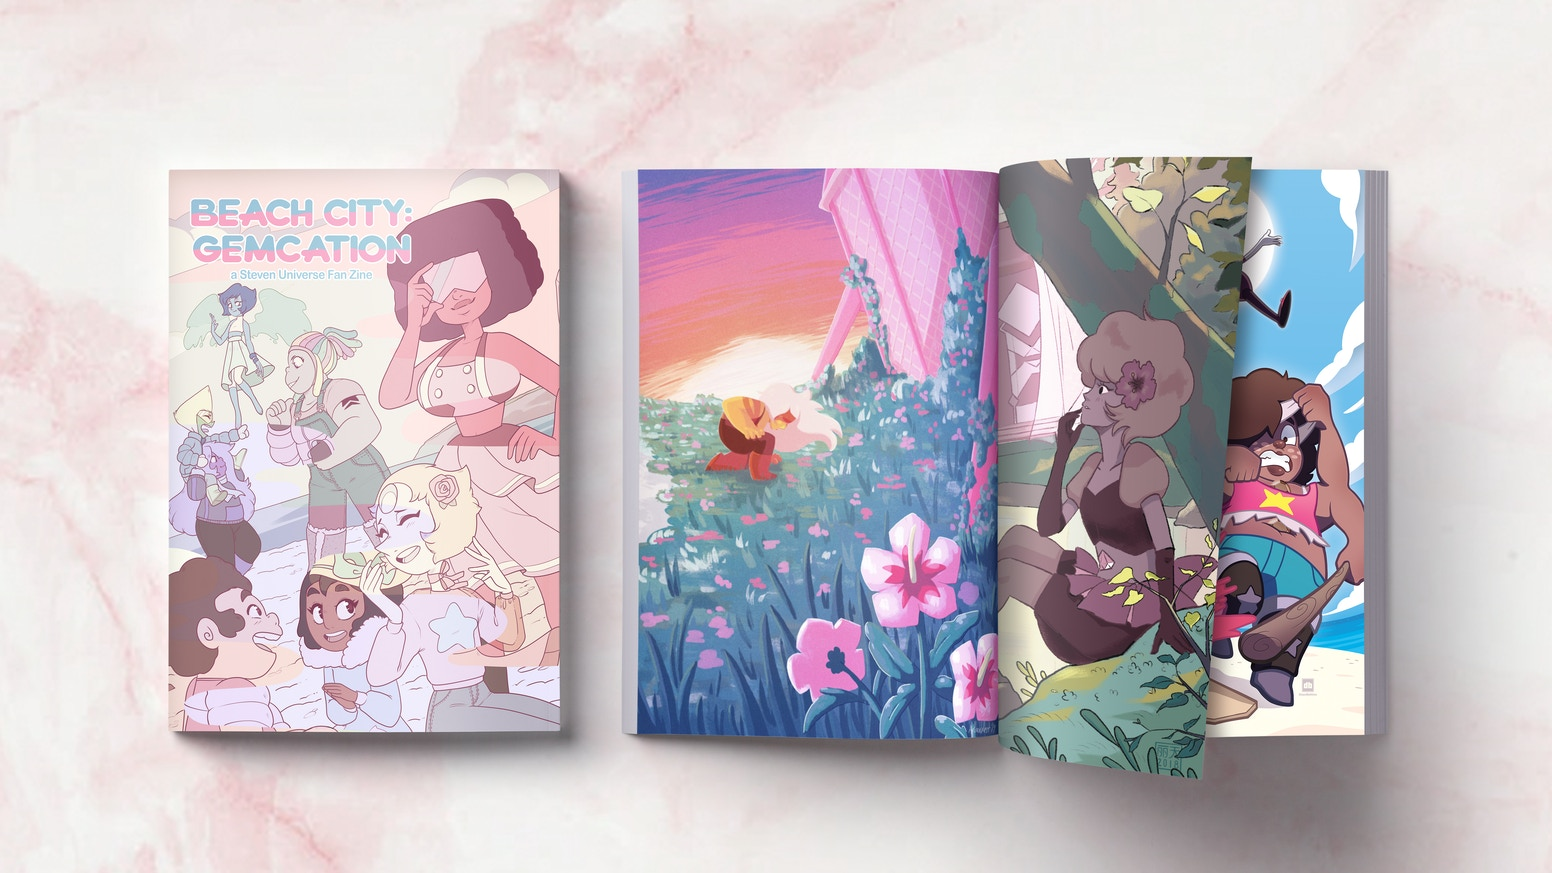 Hello Starlight! 'Beach City: Gemcation' is a SU fan zine created by fifty-two stunning artists!